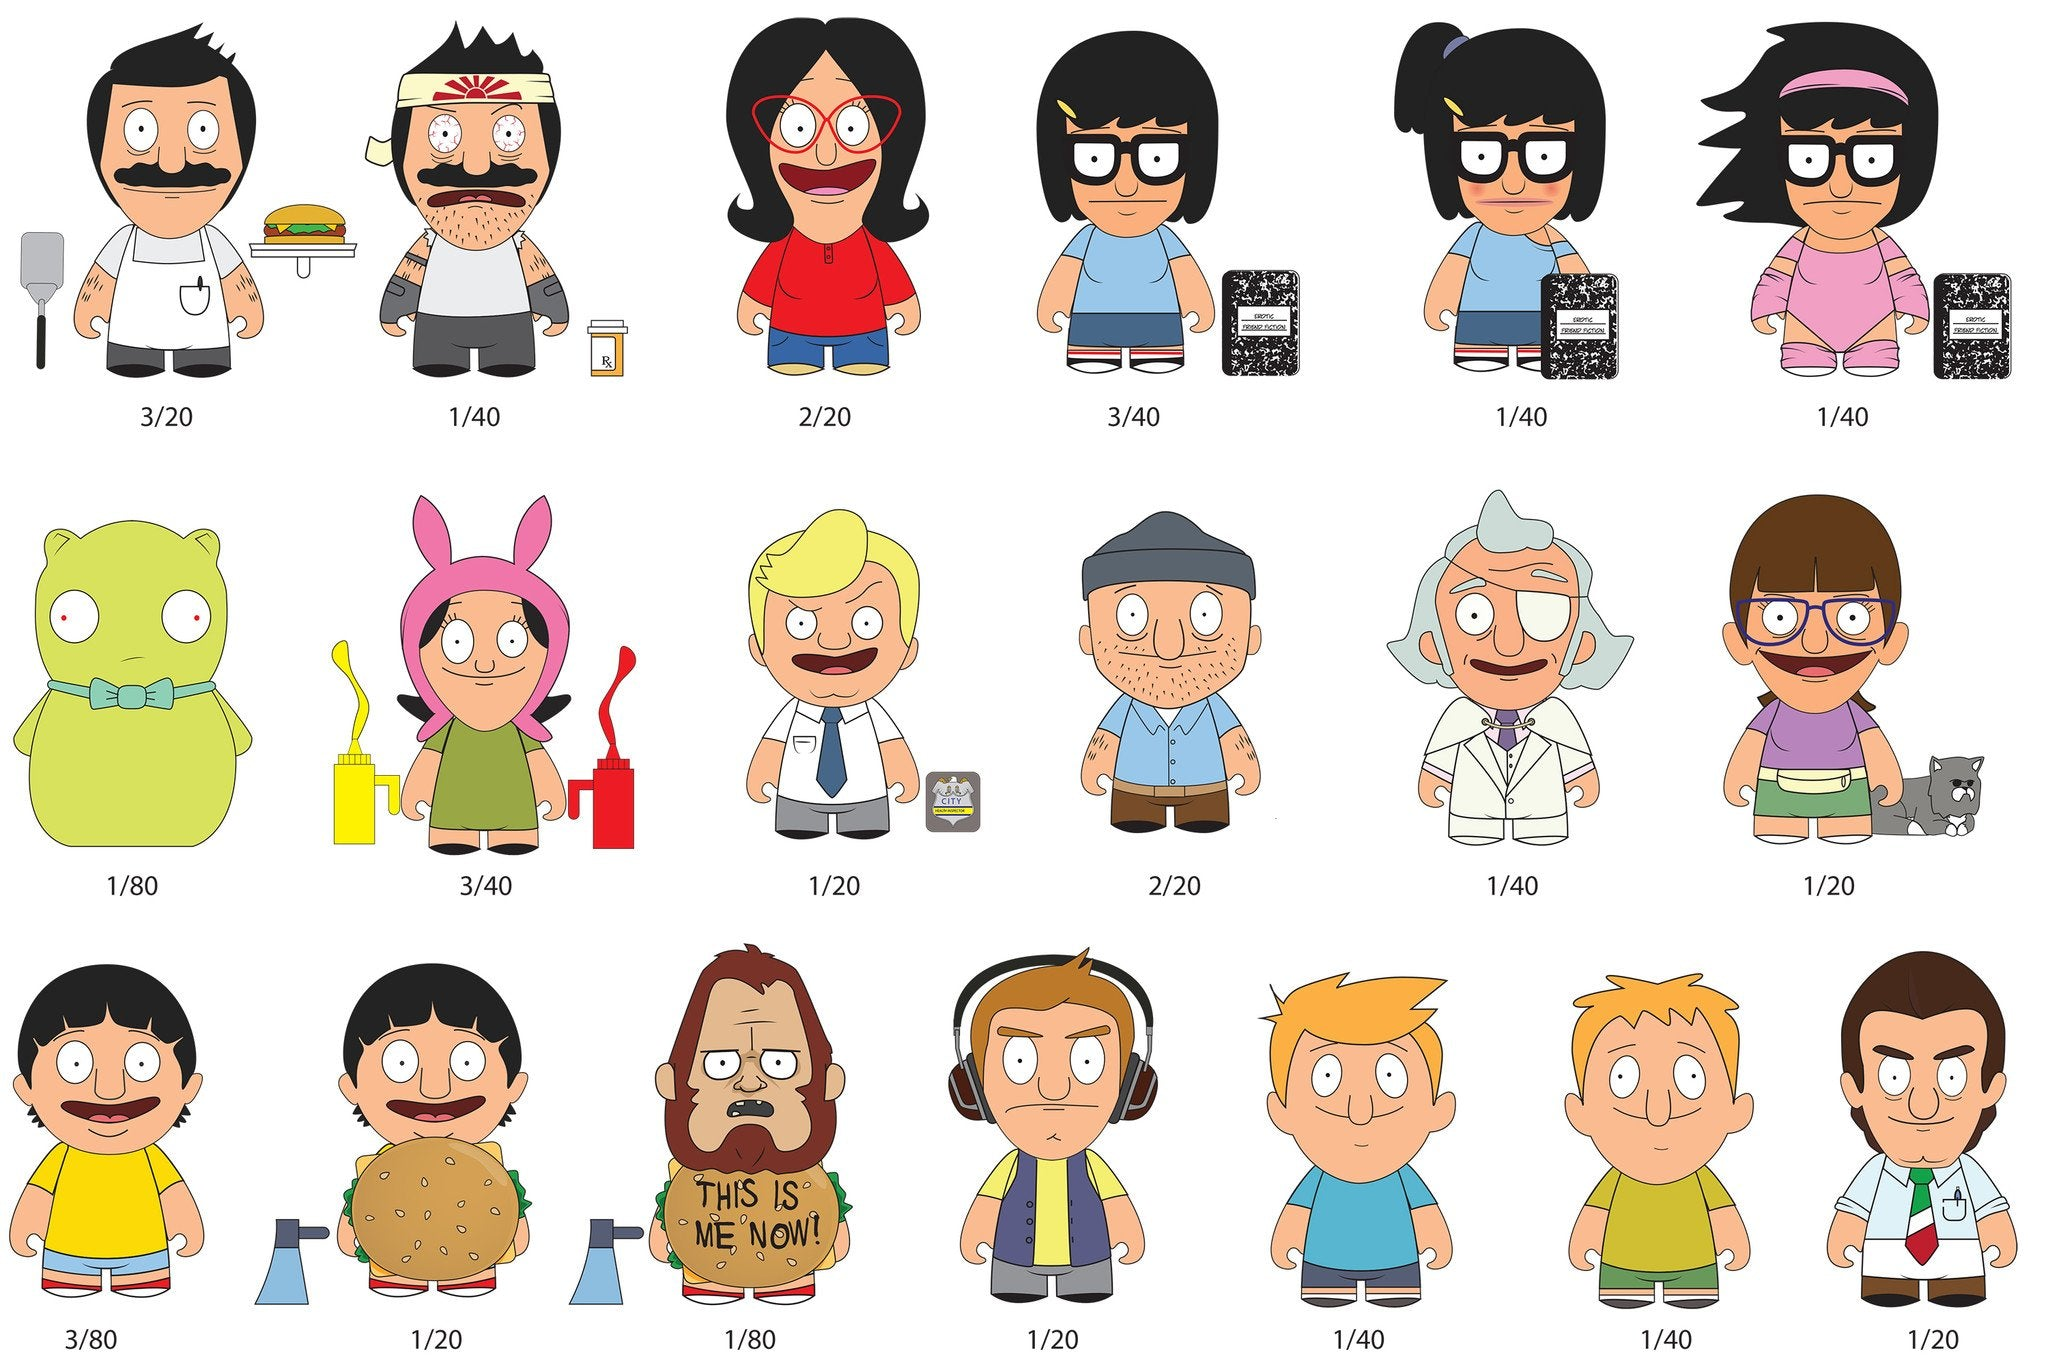 bobs burgers 3 blind box mini figure series by kidrobot